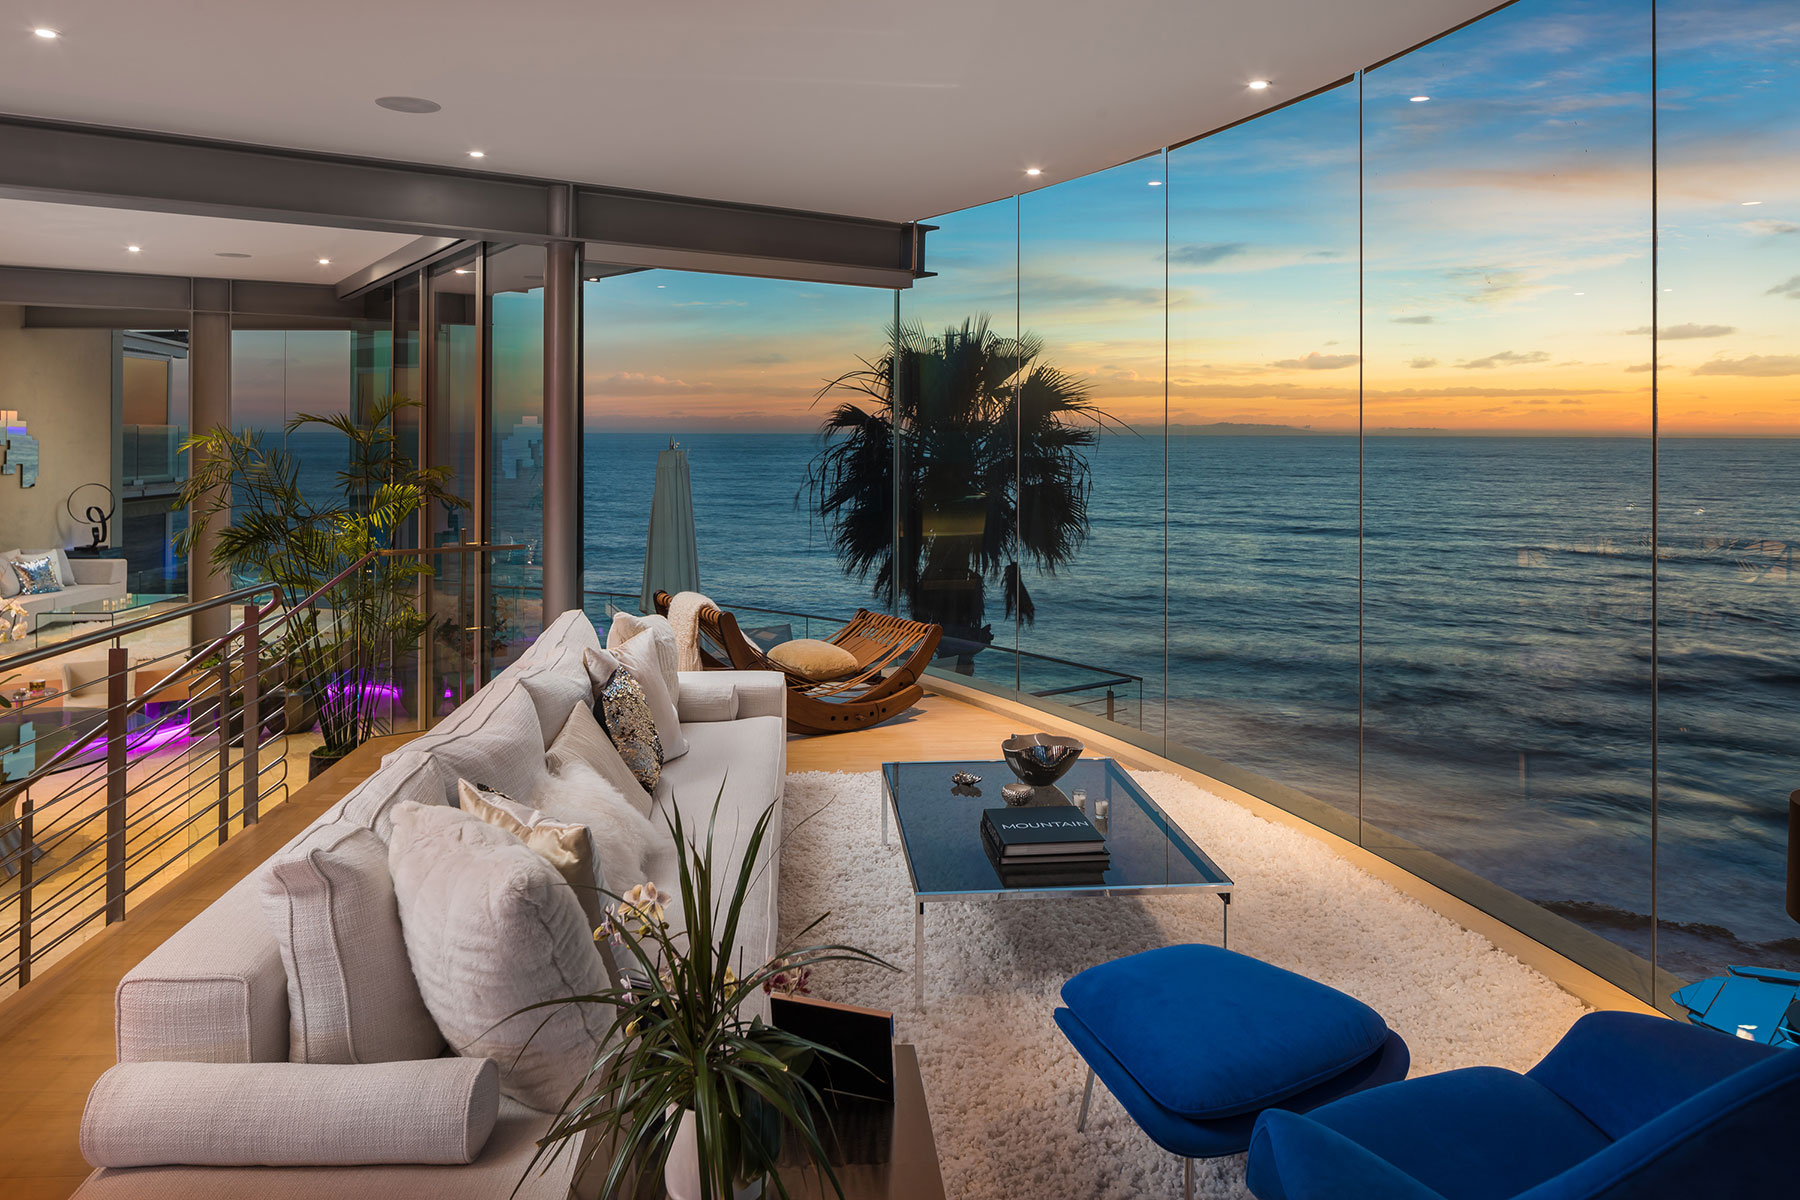 Single Family Home for Sale at 32013 Point 32013 Point Pl. Laguna Beach, California, 92651 United States